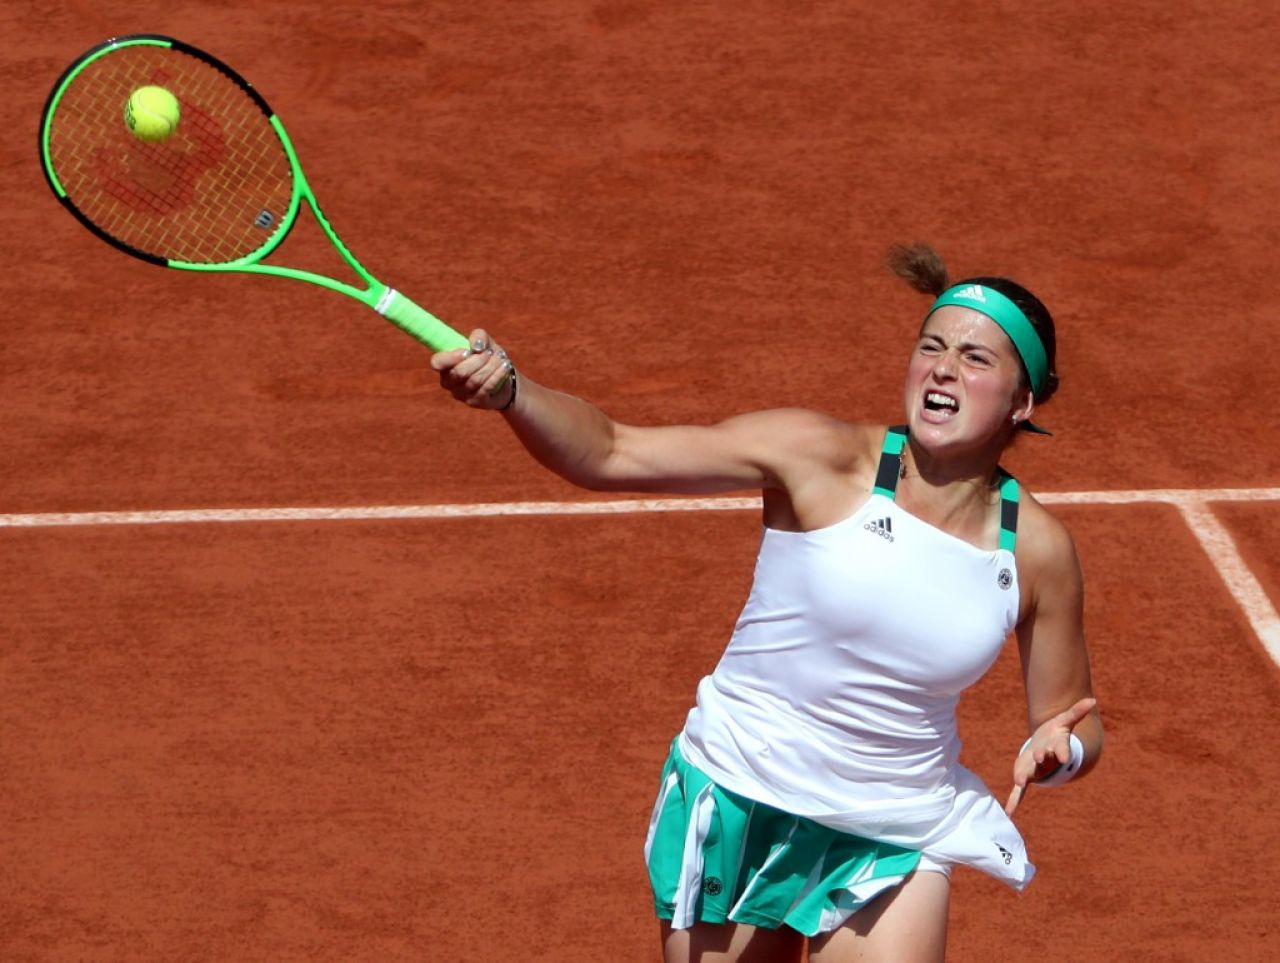 french open - photo #22